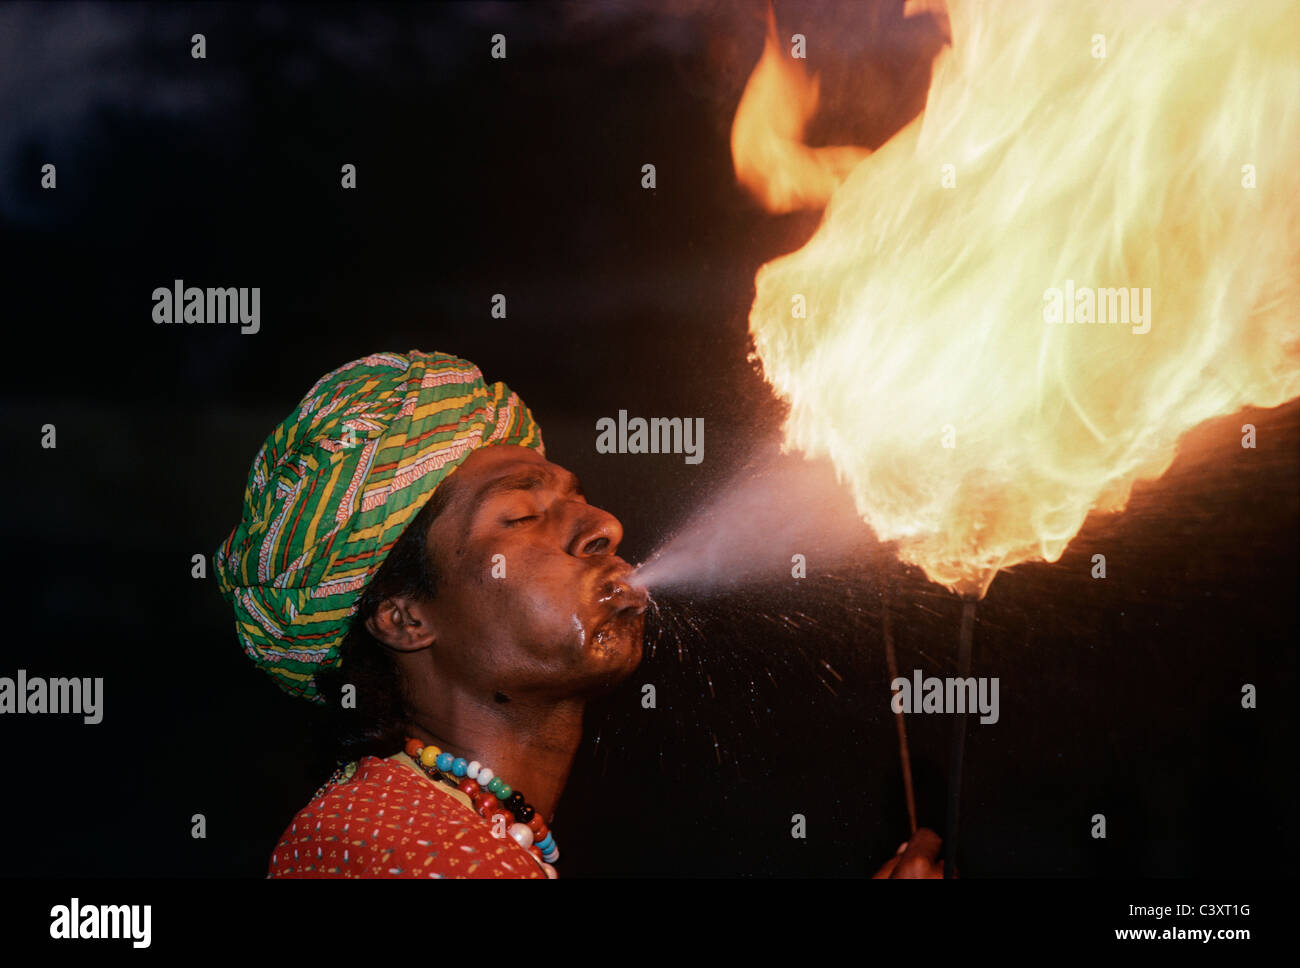 Indian fire eater blows flames during a street performance. New Delhi, India - Stock Image